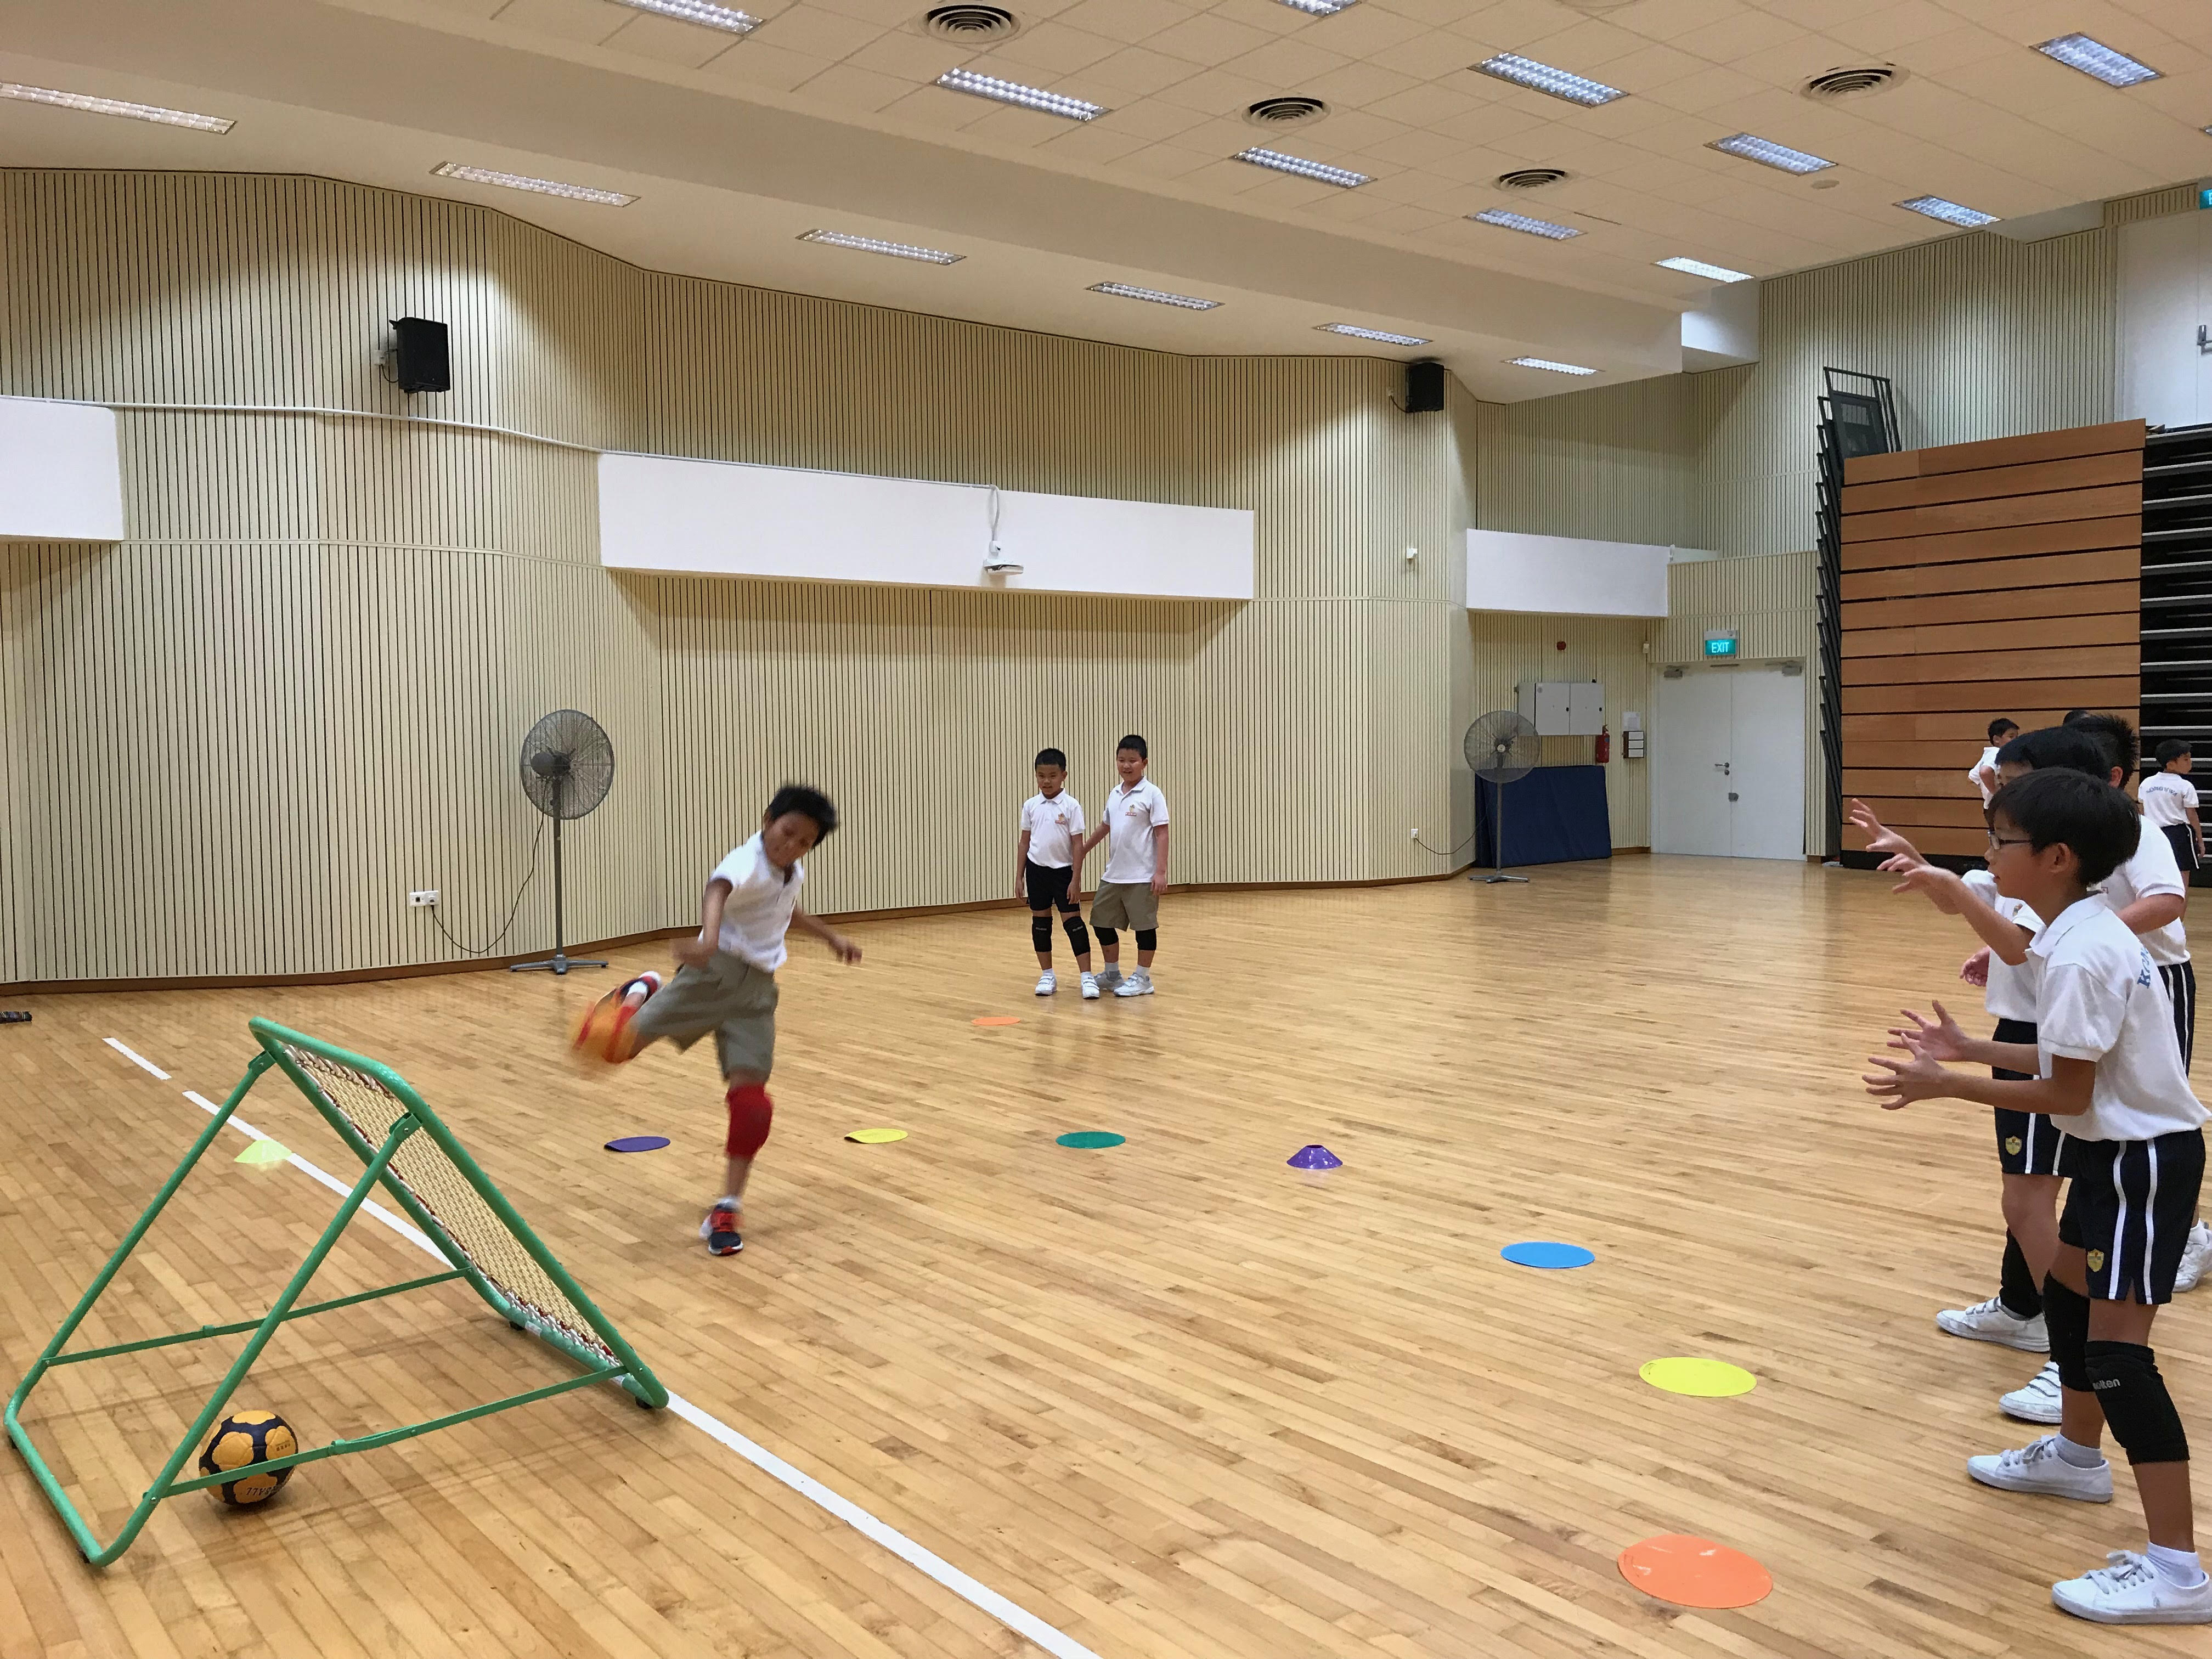 tchoukball photo 2.jpg